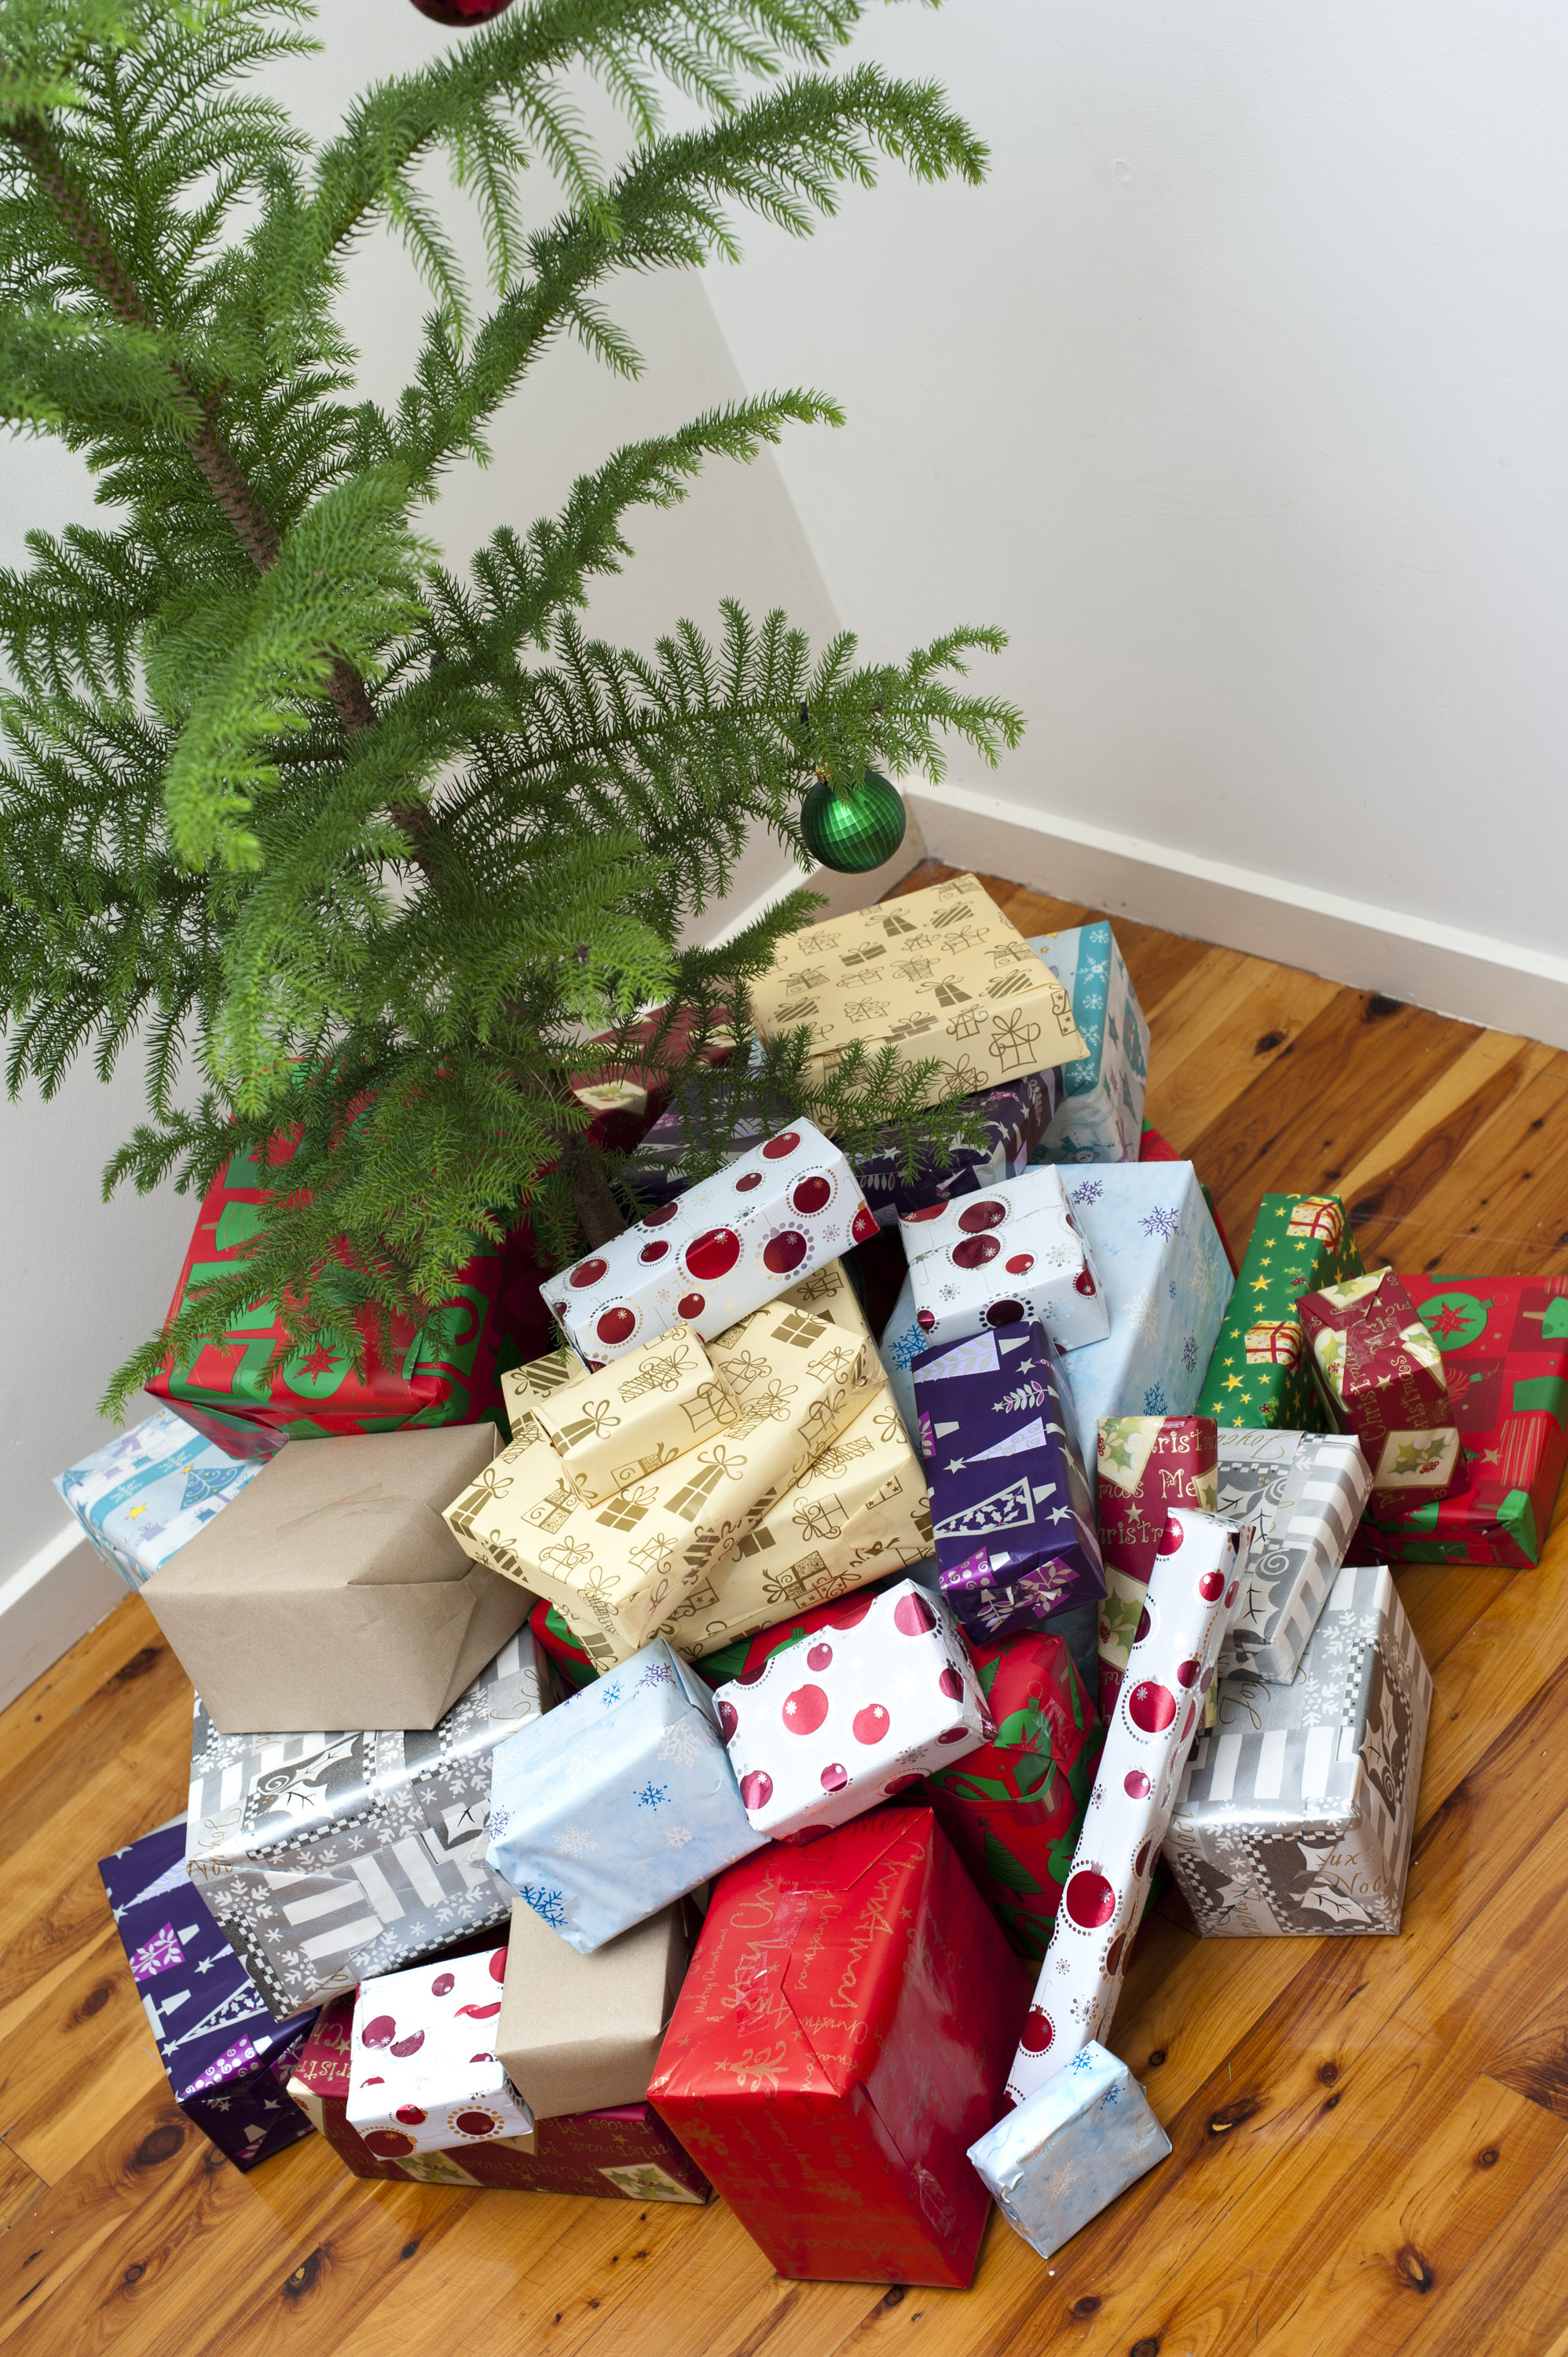 Christmas Presents Under Tree.Photo Of Large Collection Of Christmas Gifts Under A Tree